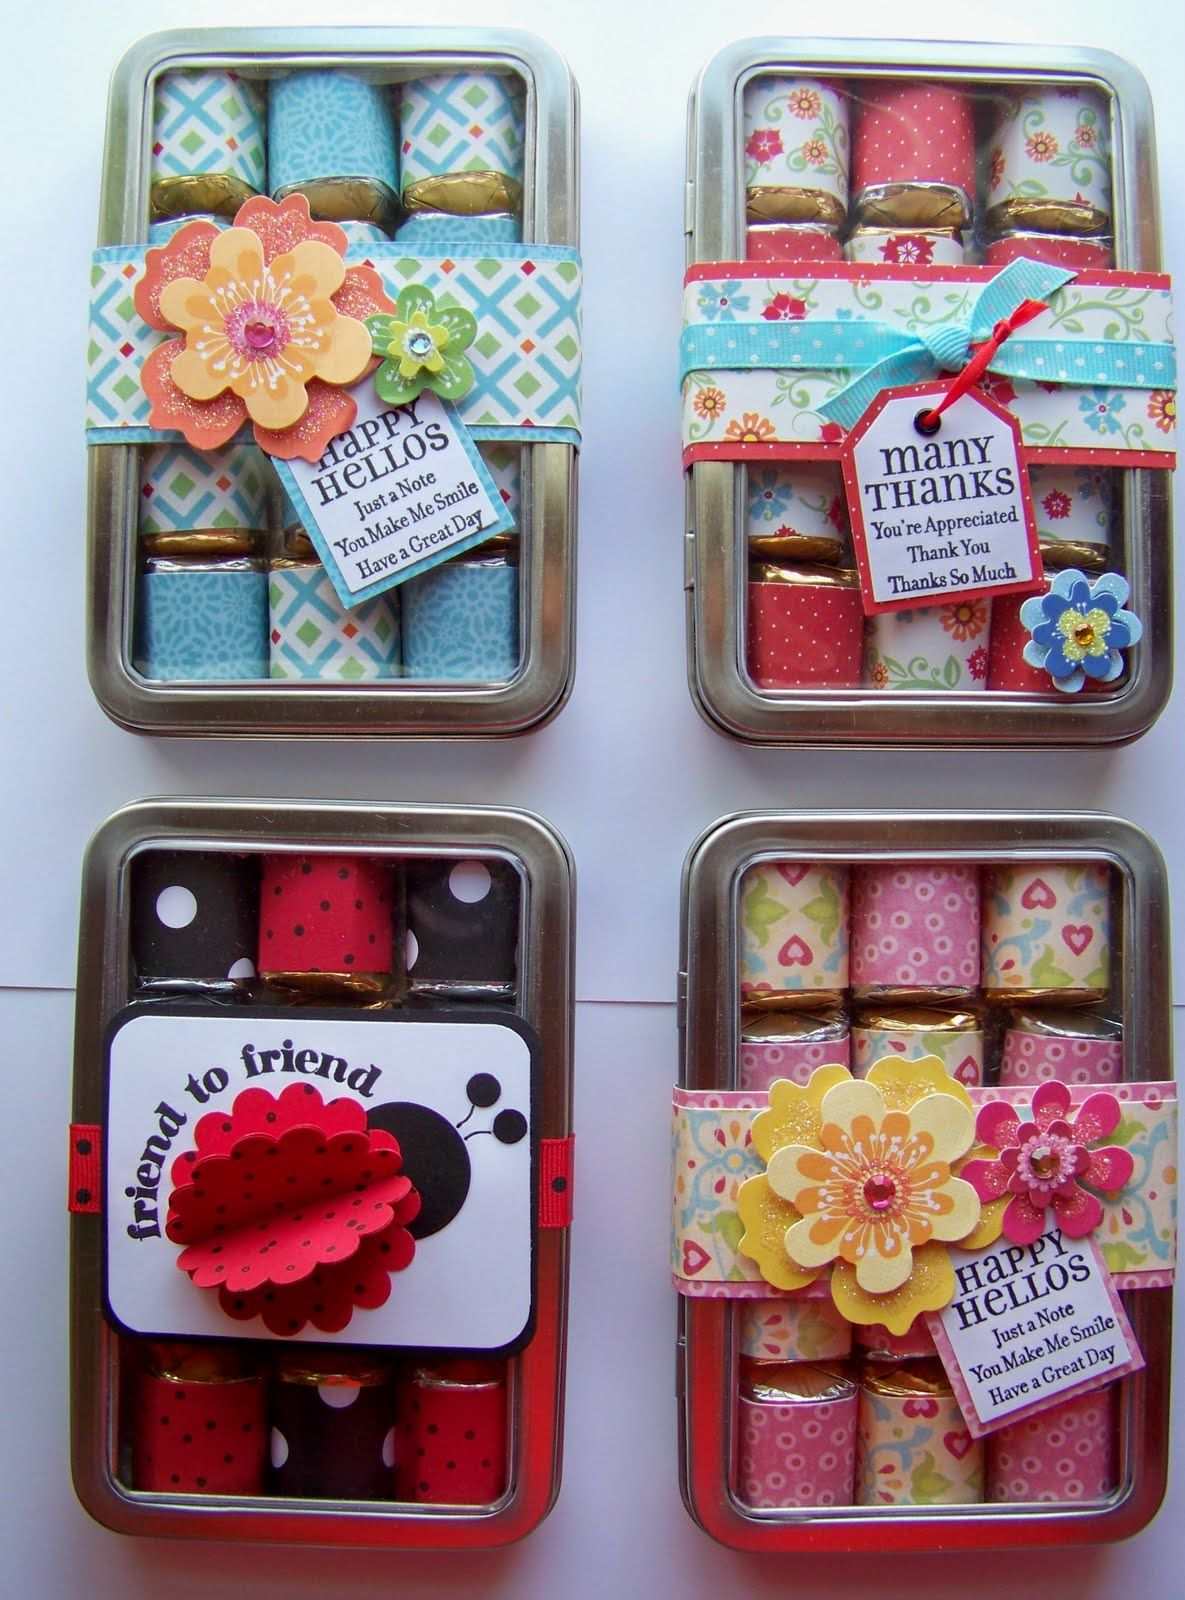 Chocolate hershey nuggets gifts use scrap paper